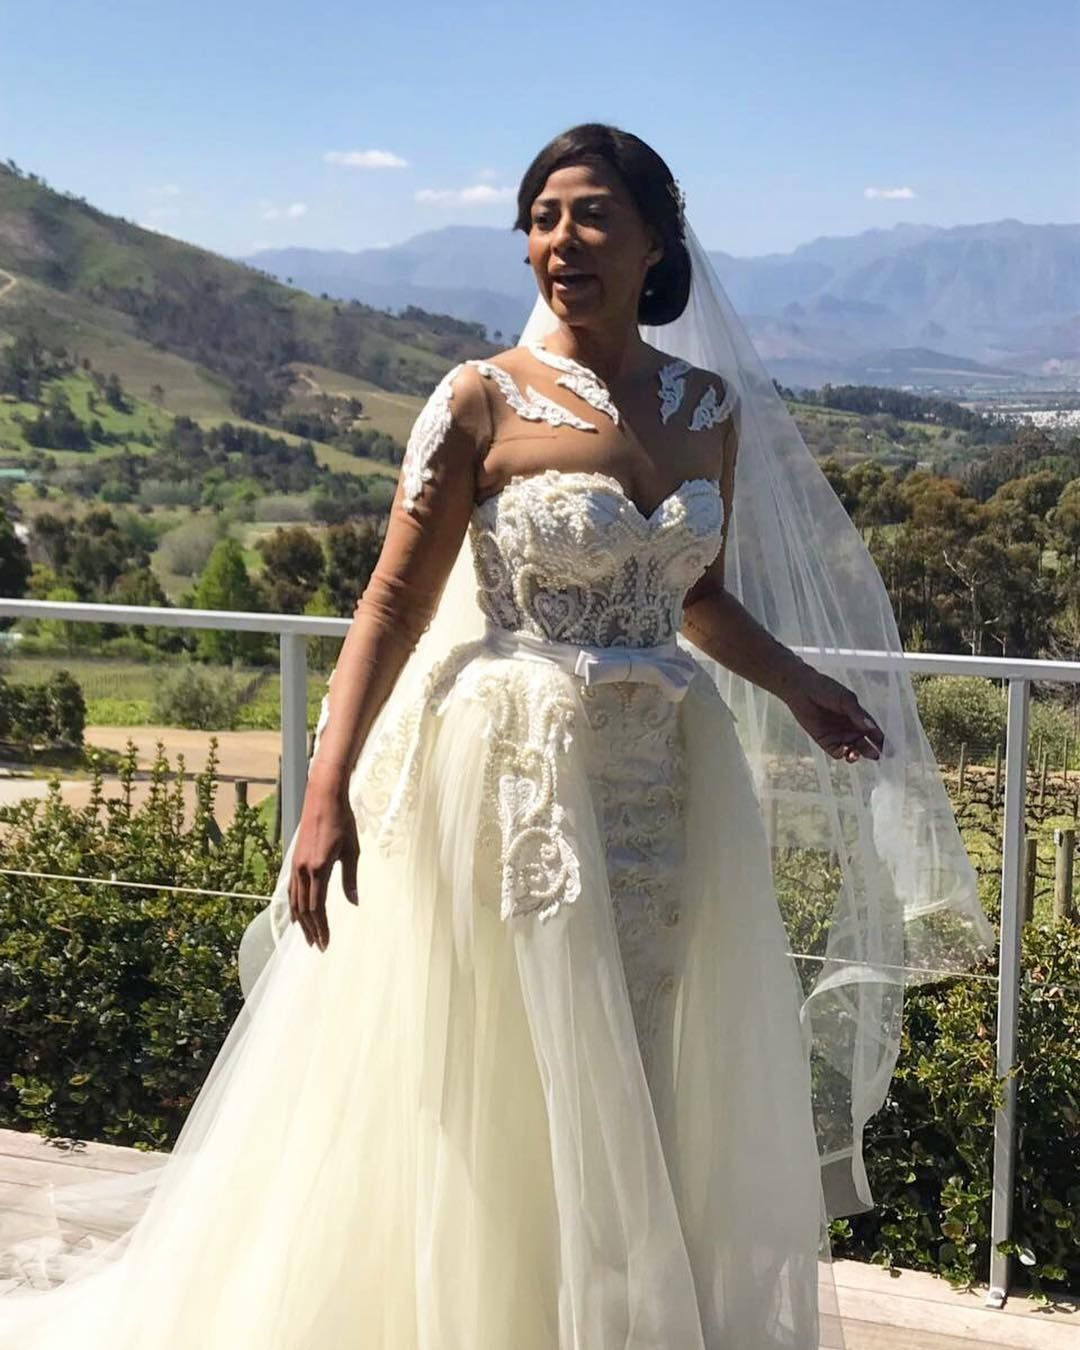 Altar Bound Wedding Dresses: Love At First Sight:Orapeleng Modutle's Dresses Will Blow